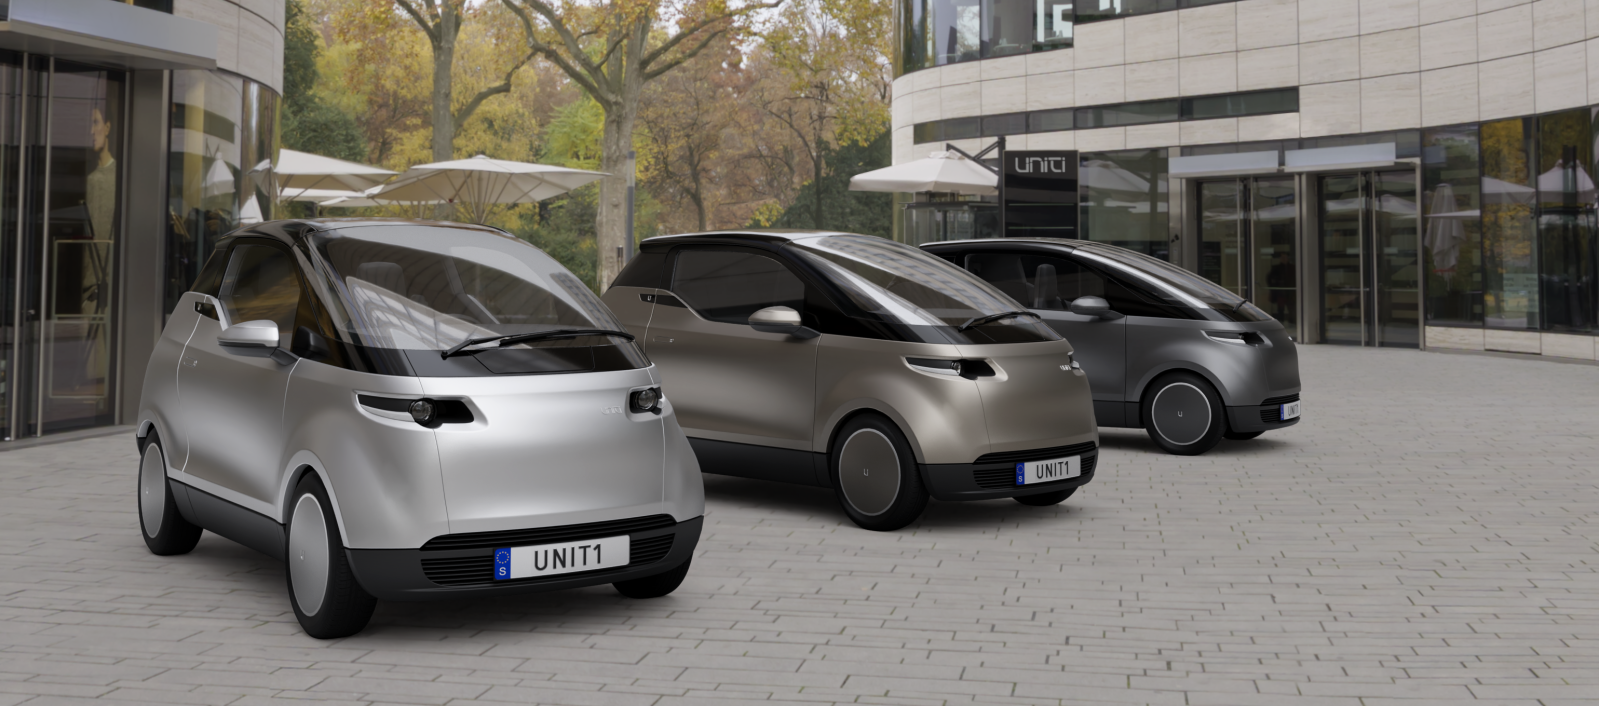 Uniti announces $19,600 price for its small crowdfunded electric car, updates specs